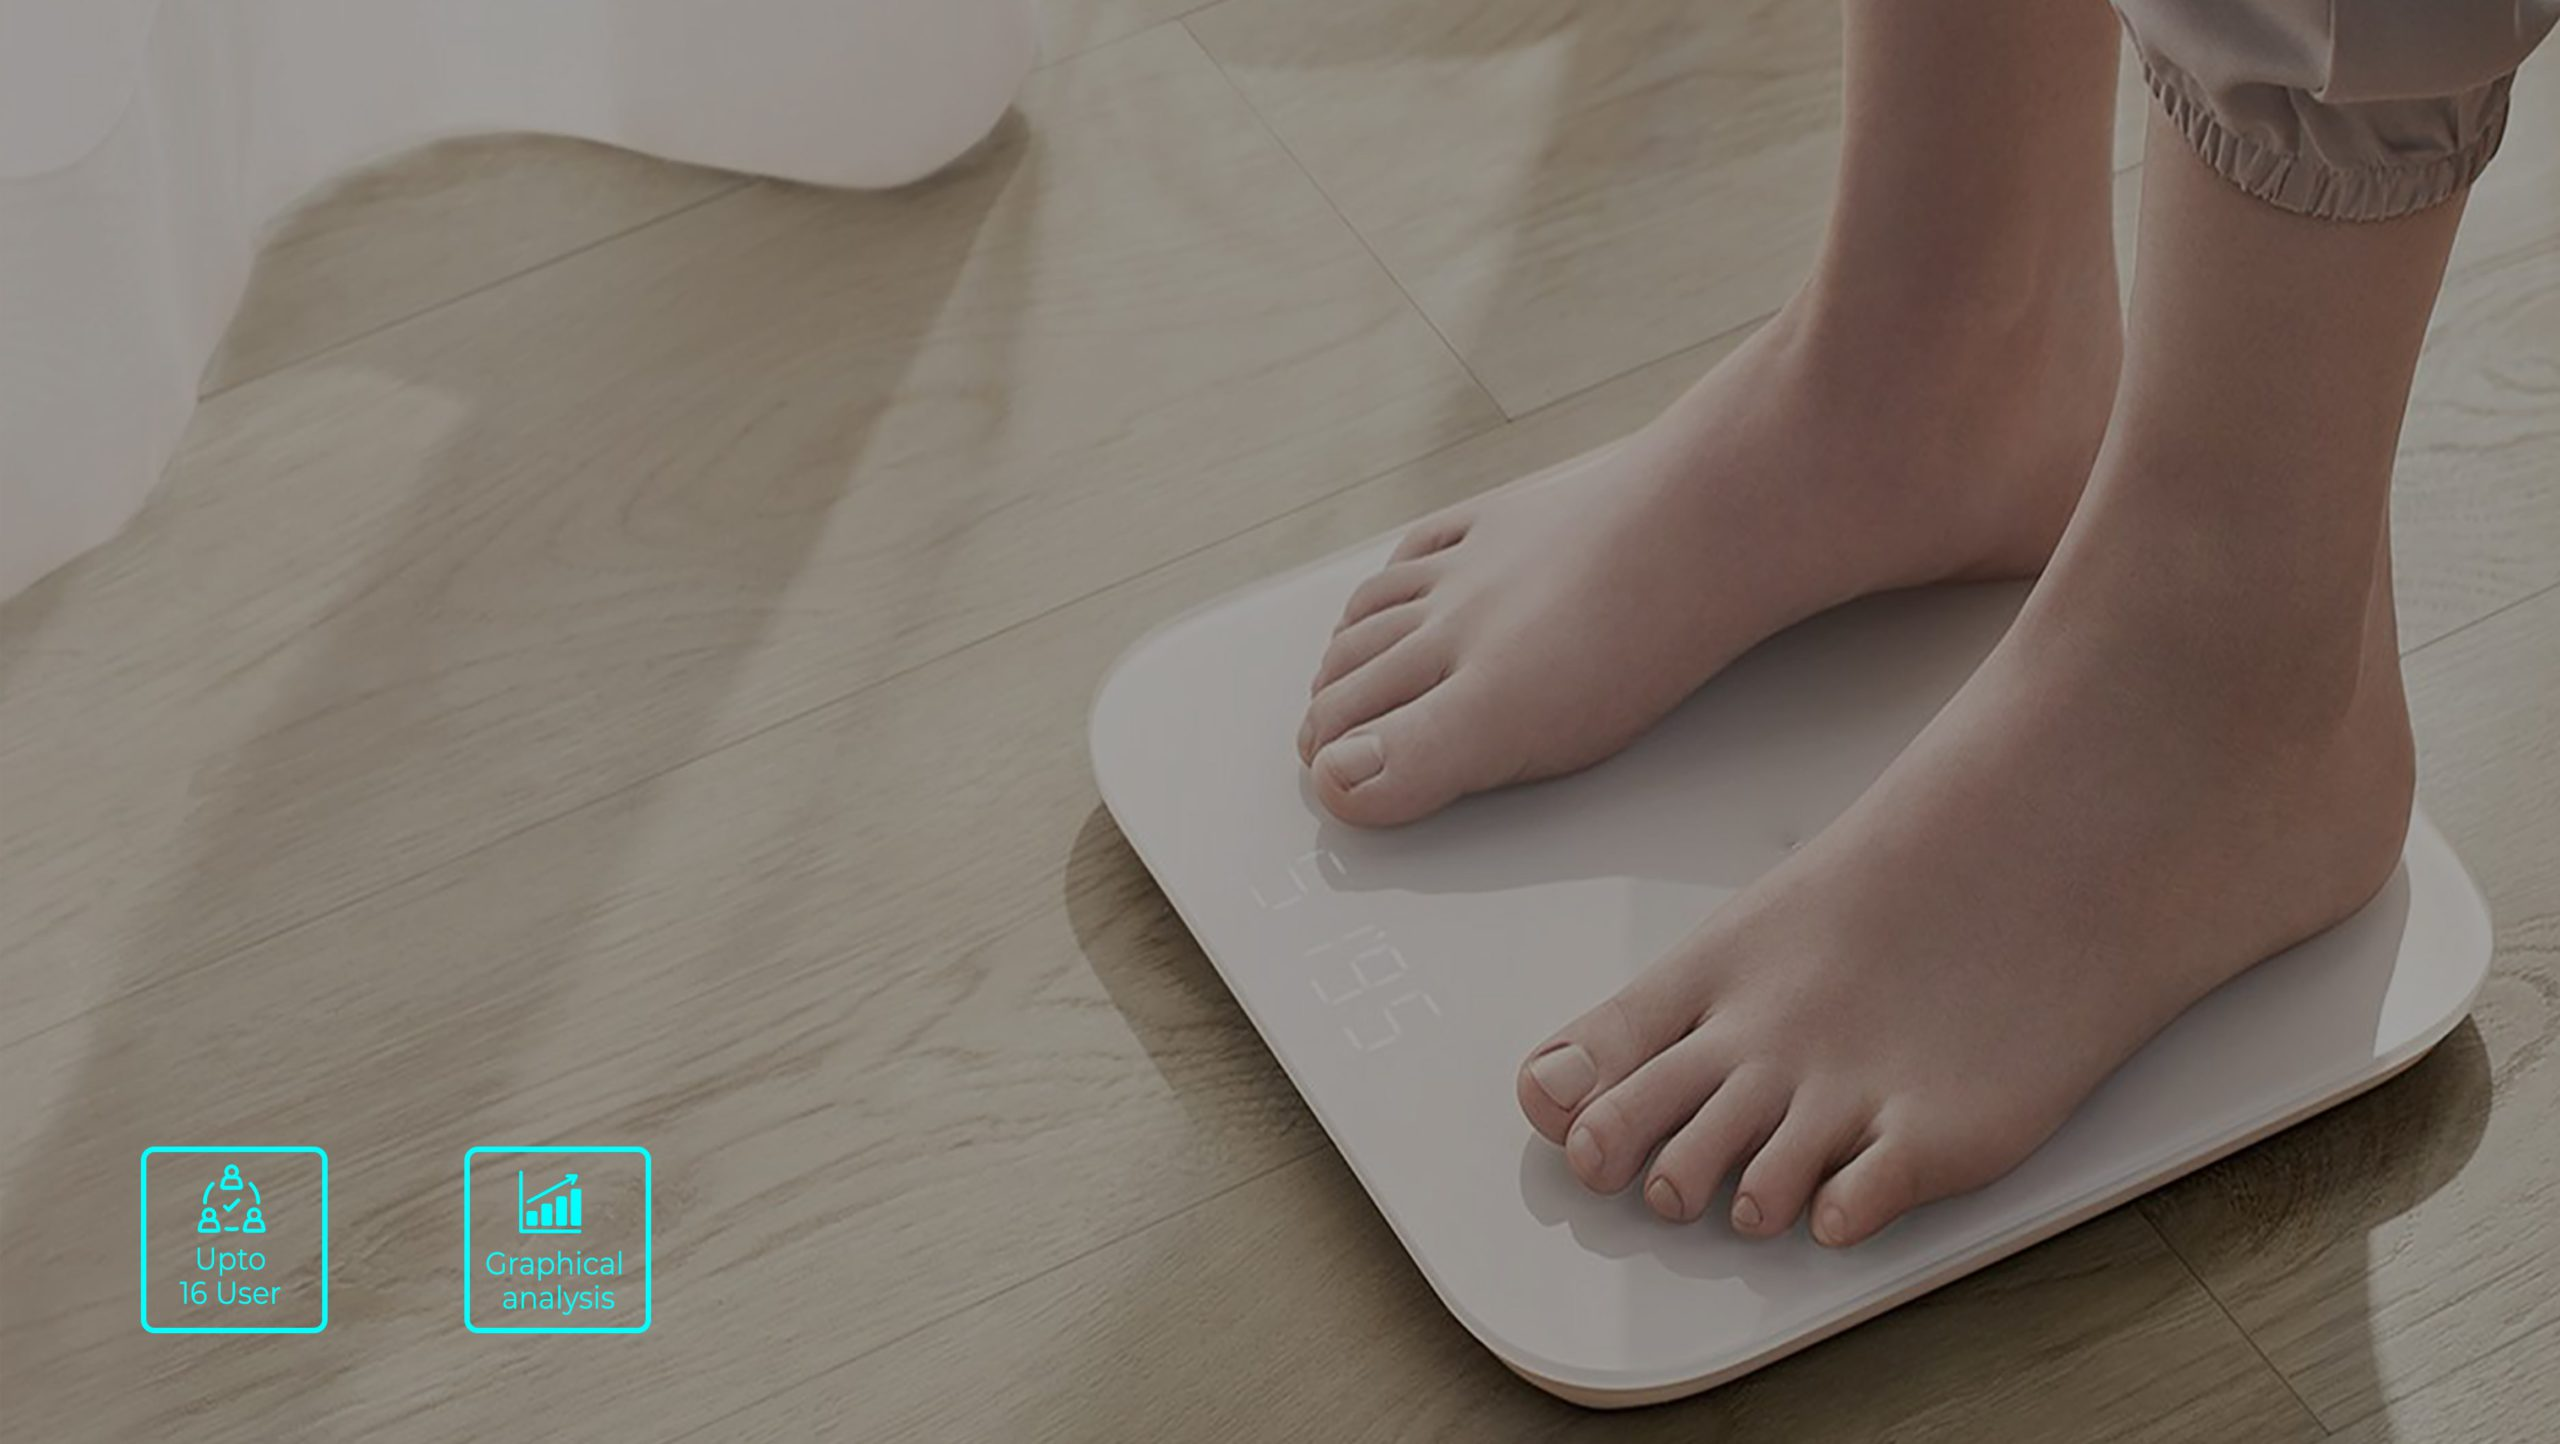 Smart weighing scale